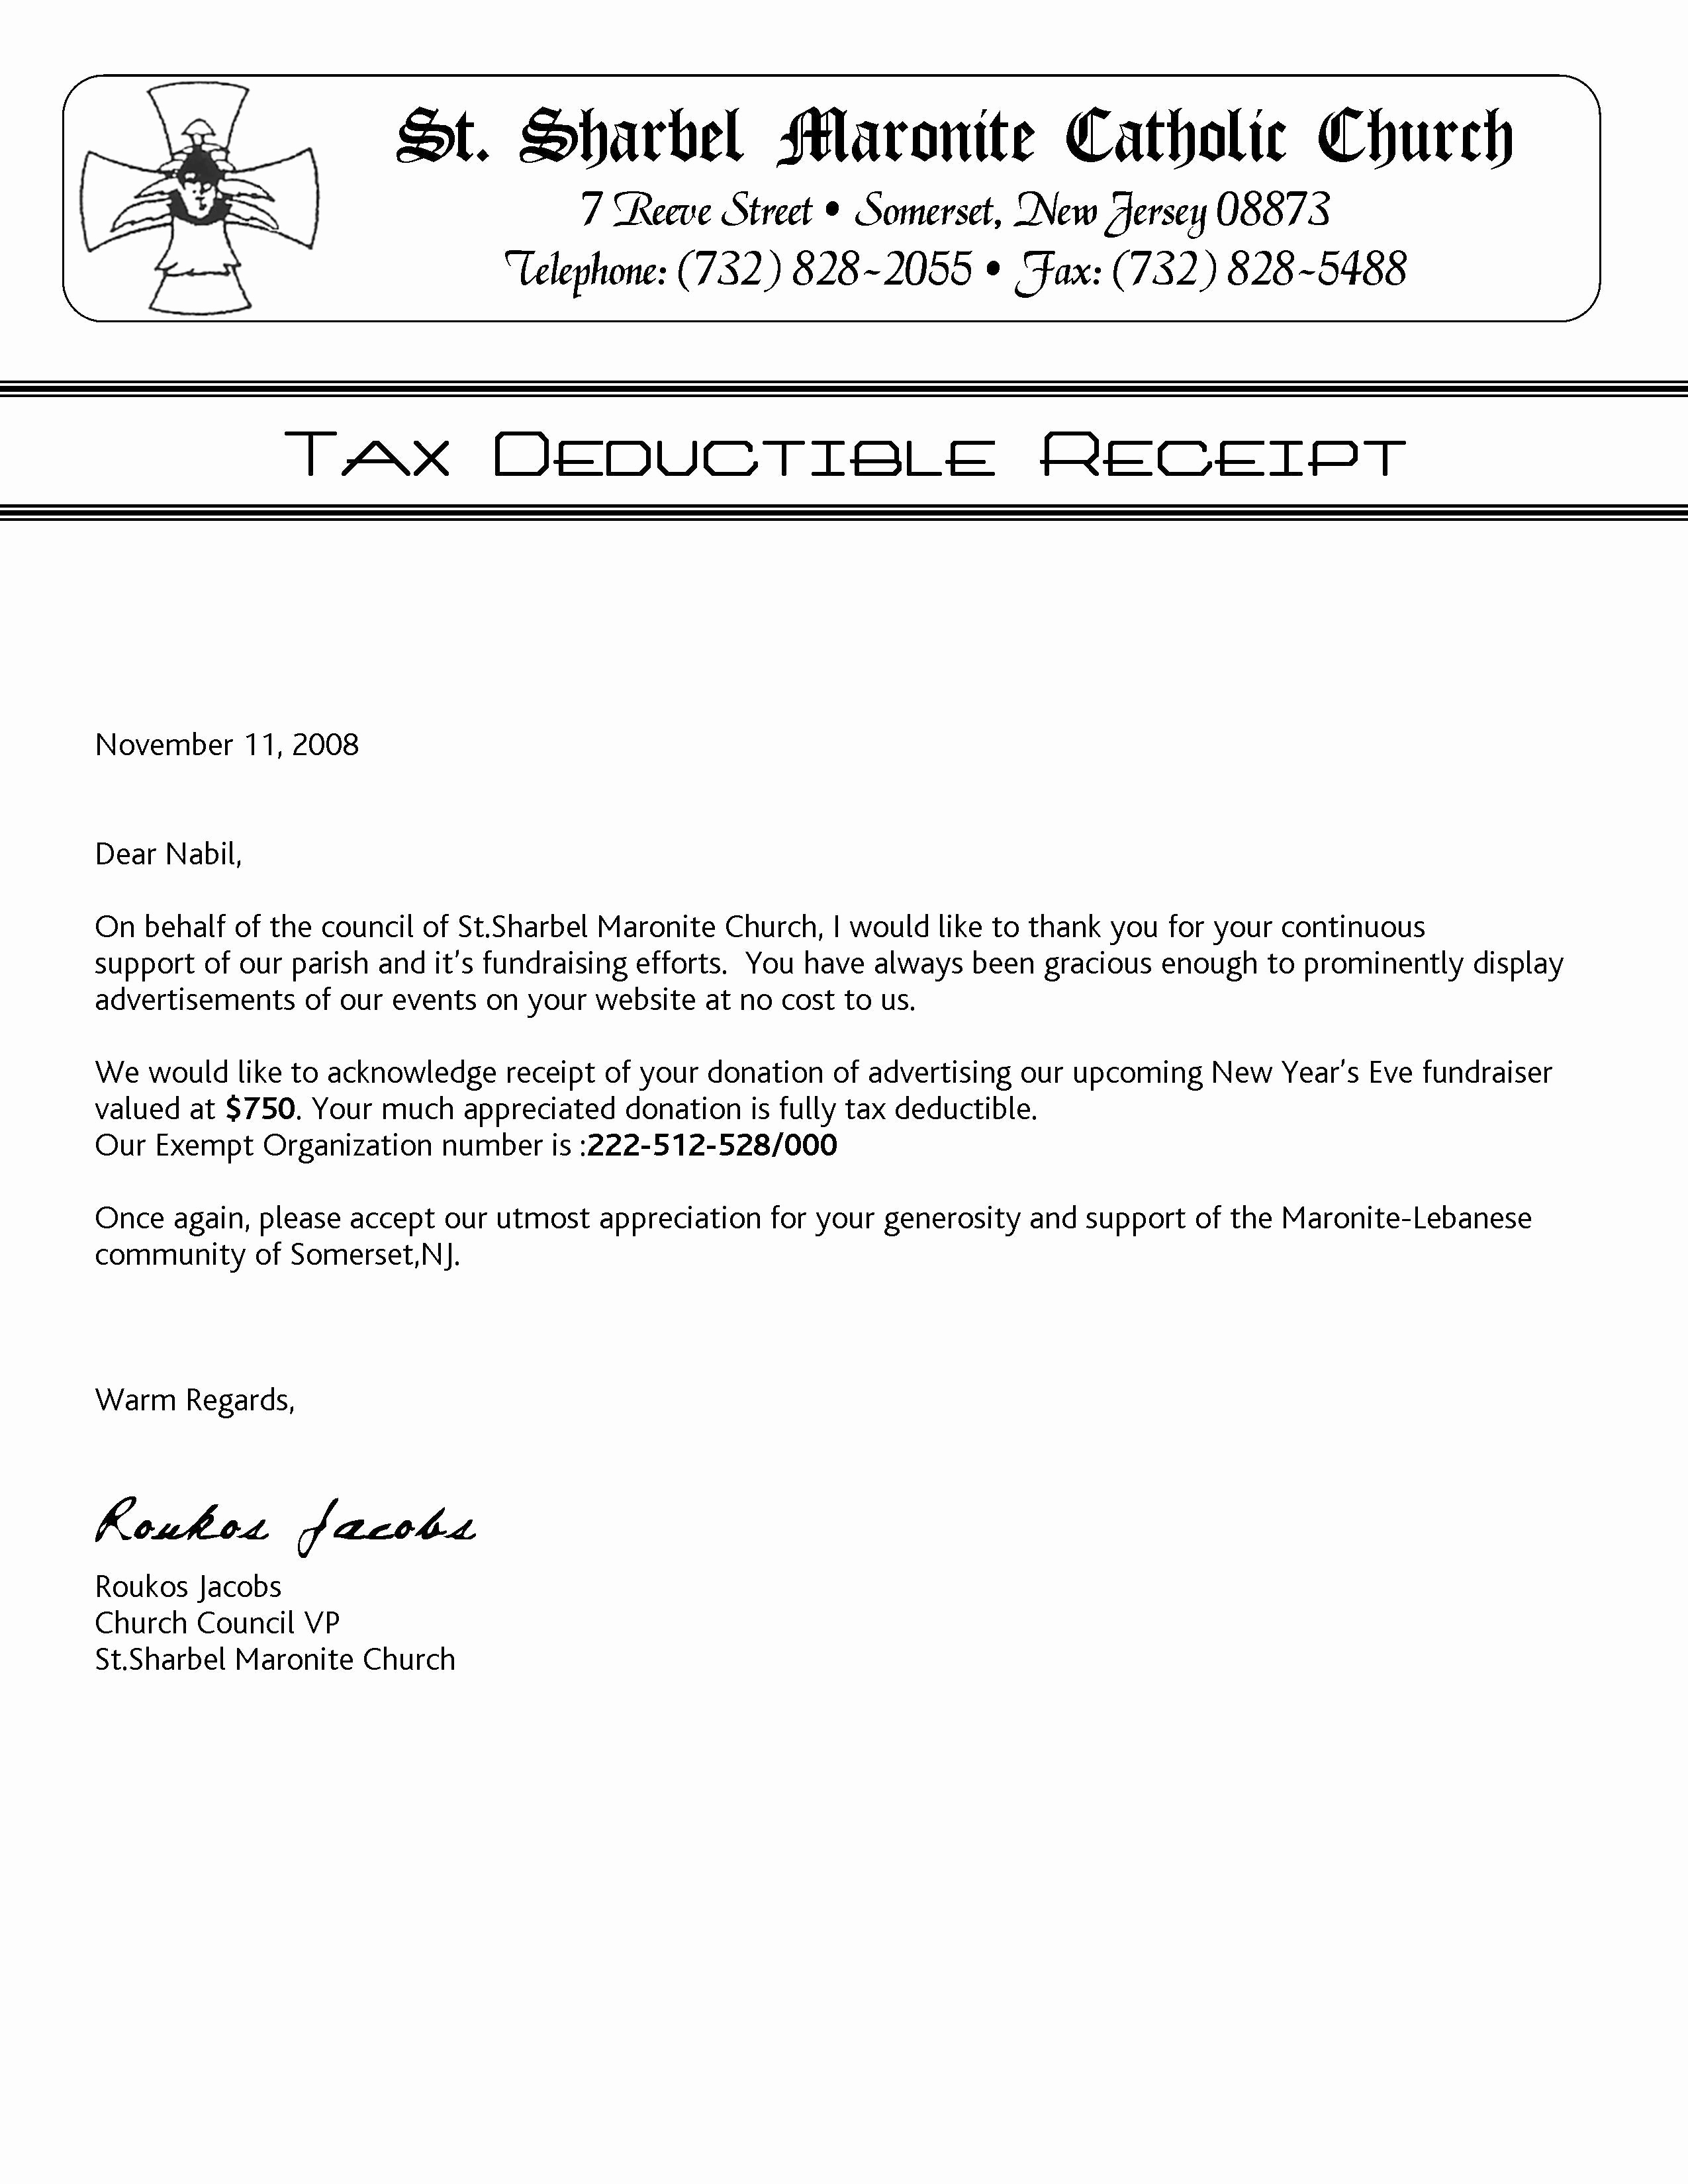 Church Donation Letter for Tax Purposes Template - 50 Inspirational Gallery Tax Deductible Donation form Template